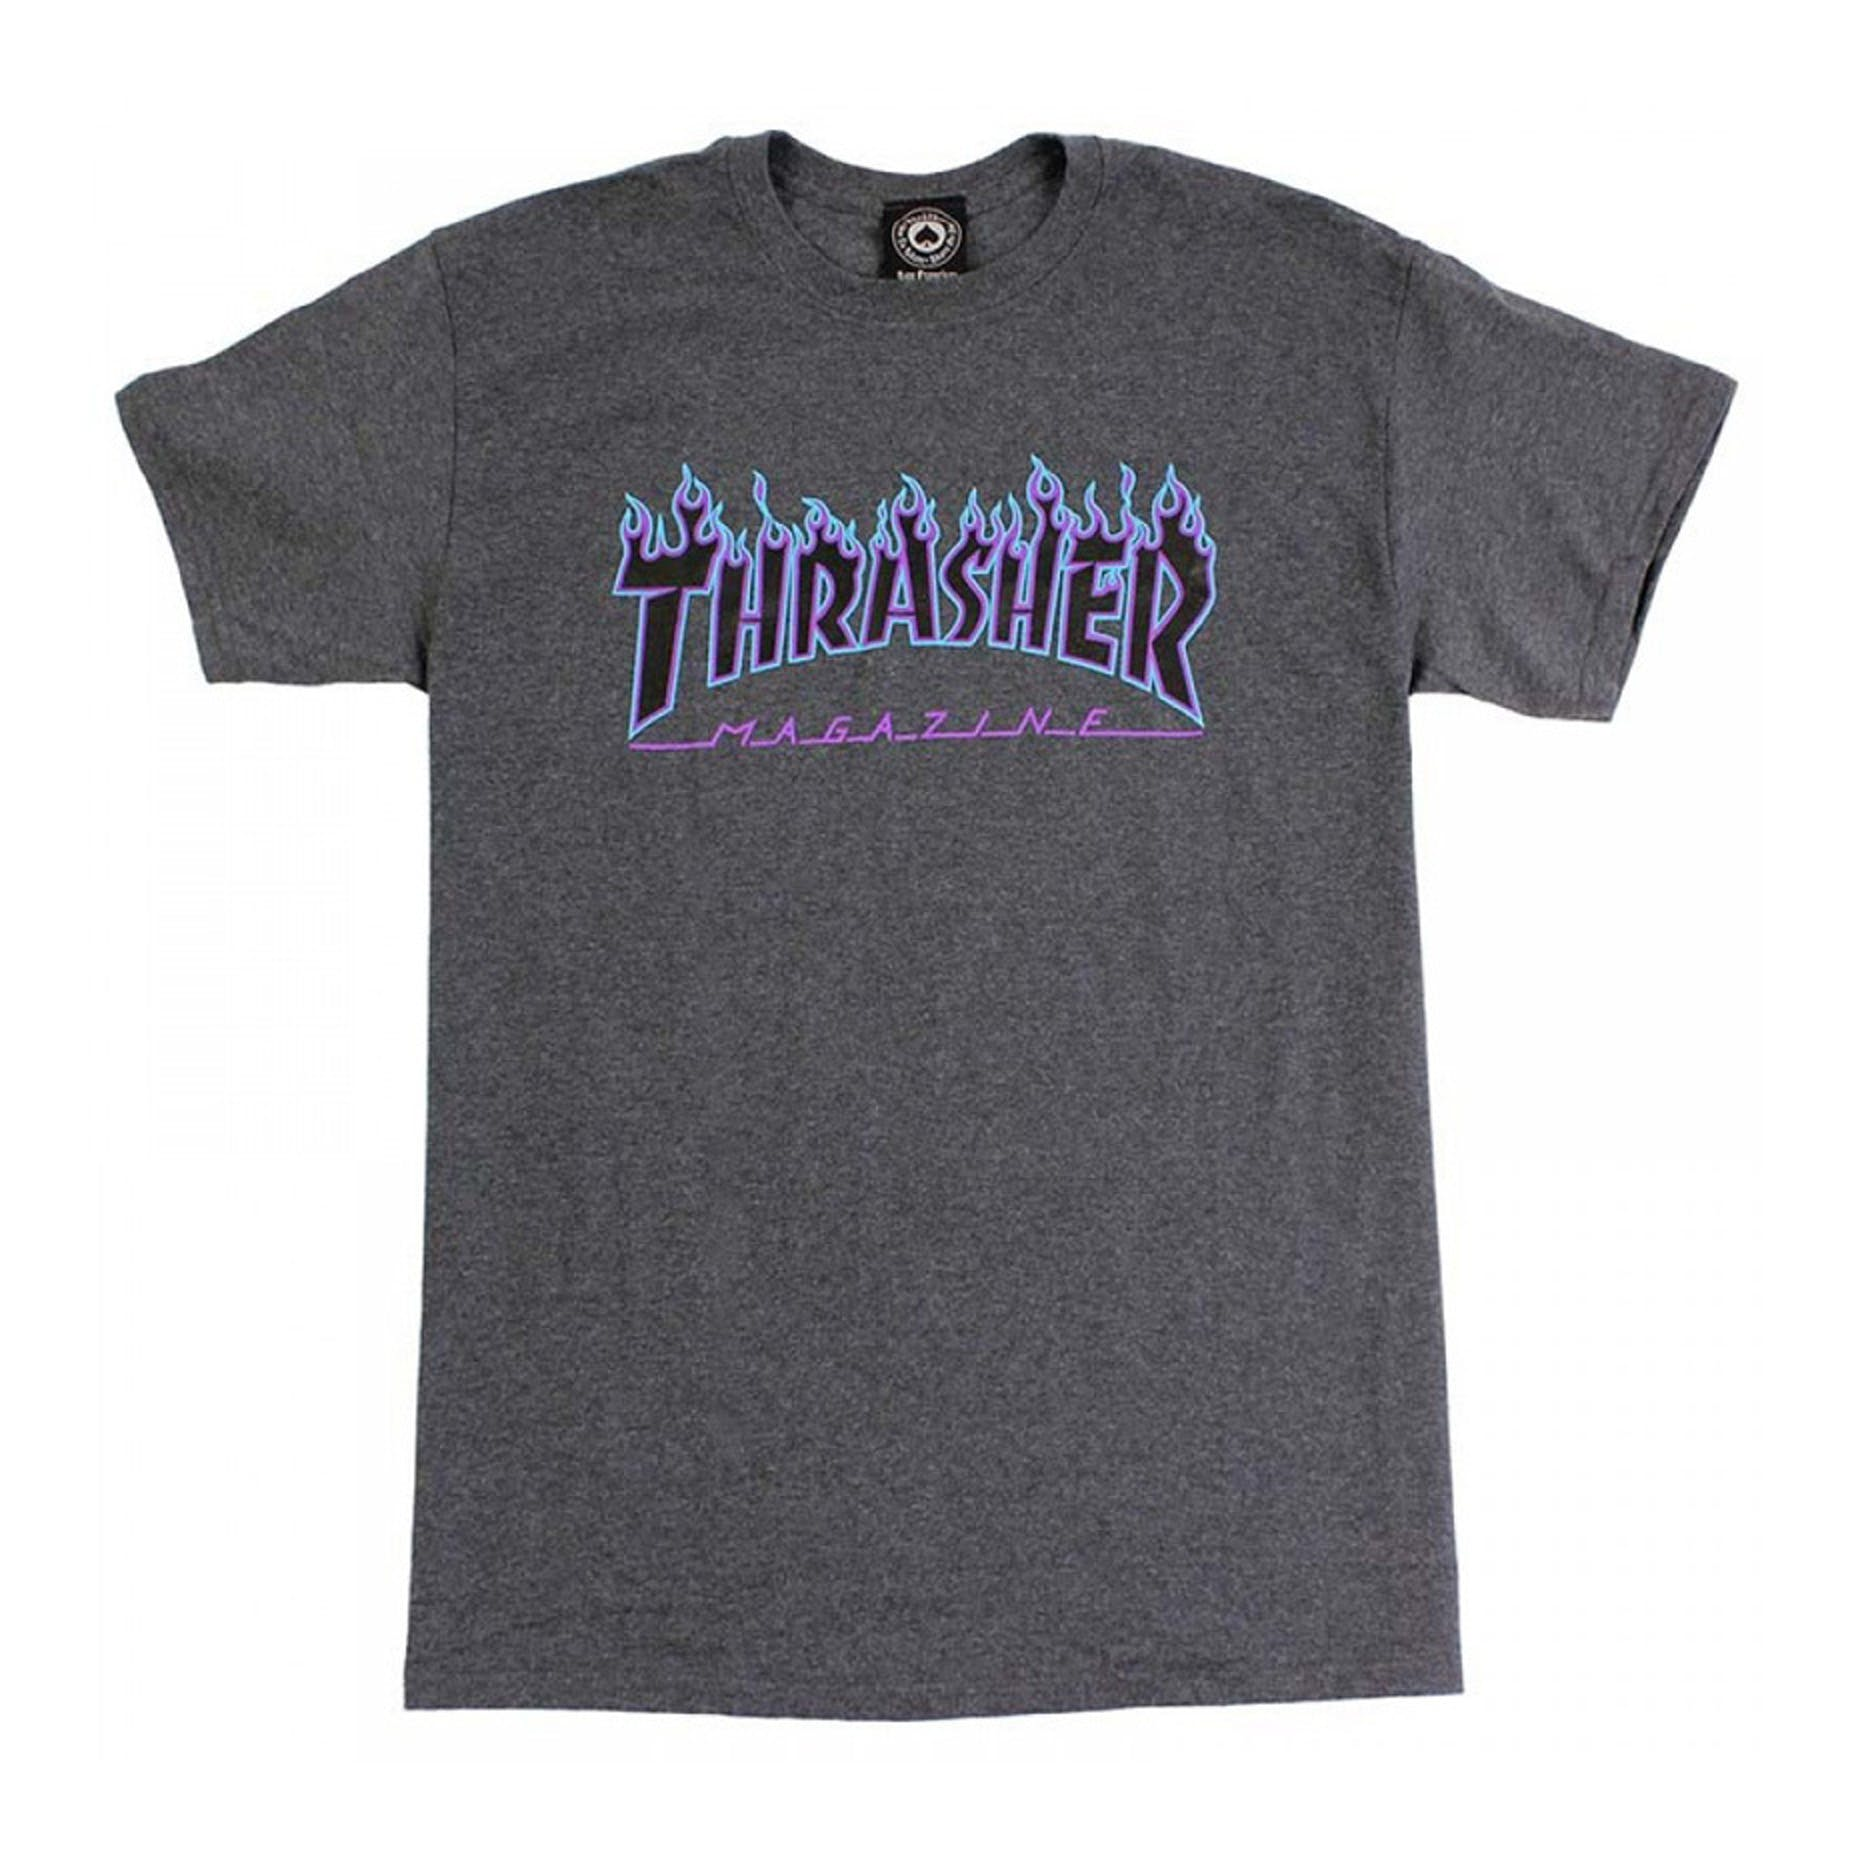 bf94f32fa892 Thrasher Flame T-Shirt - Dark Heather Grey | BOARDWORLD Store